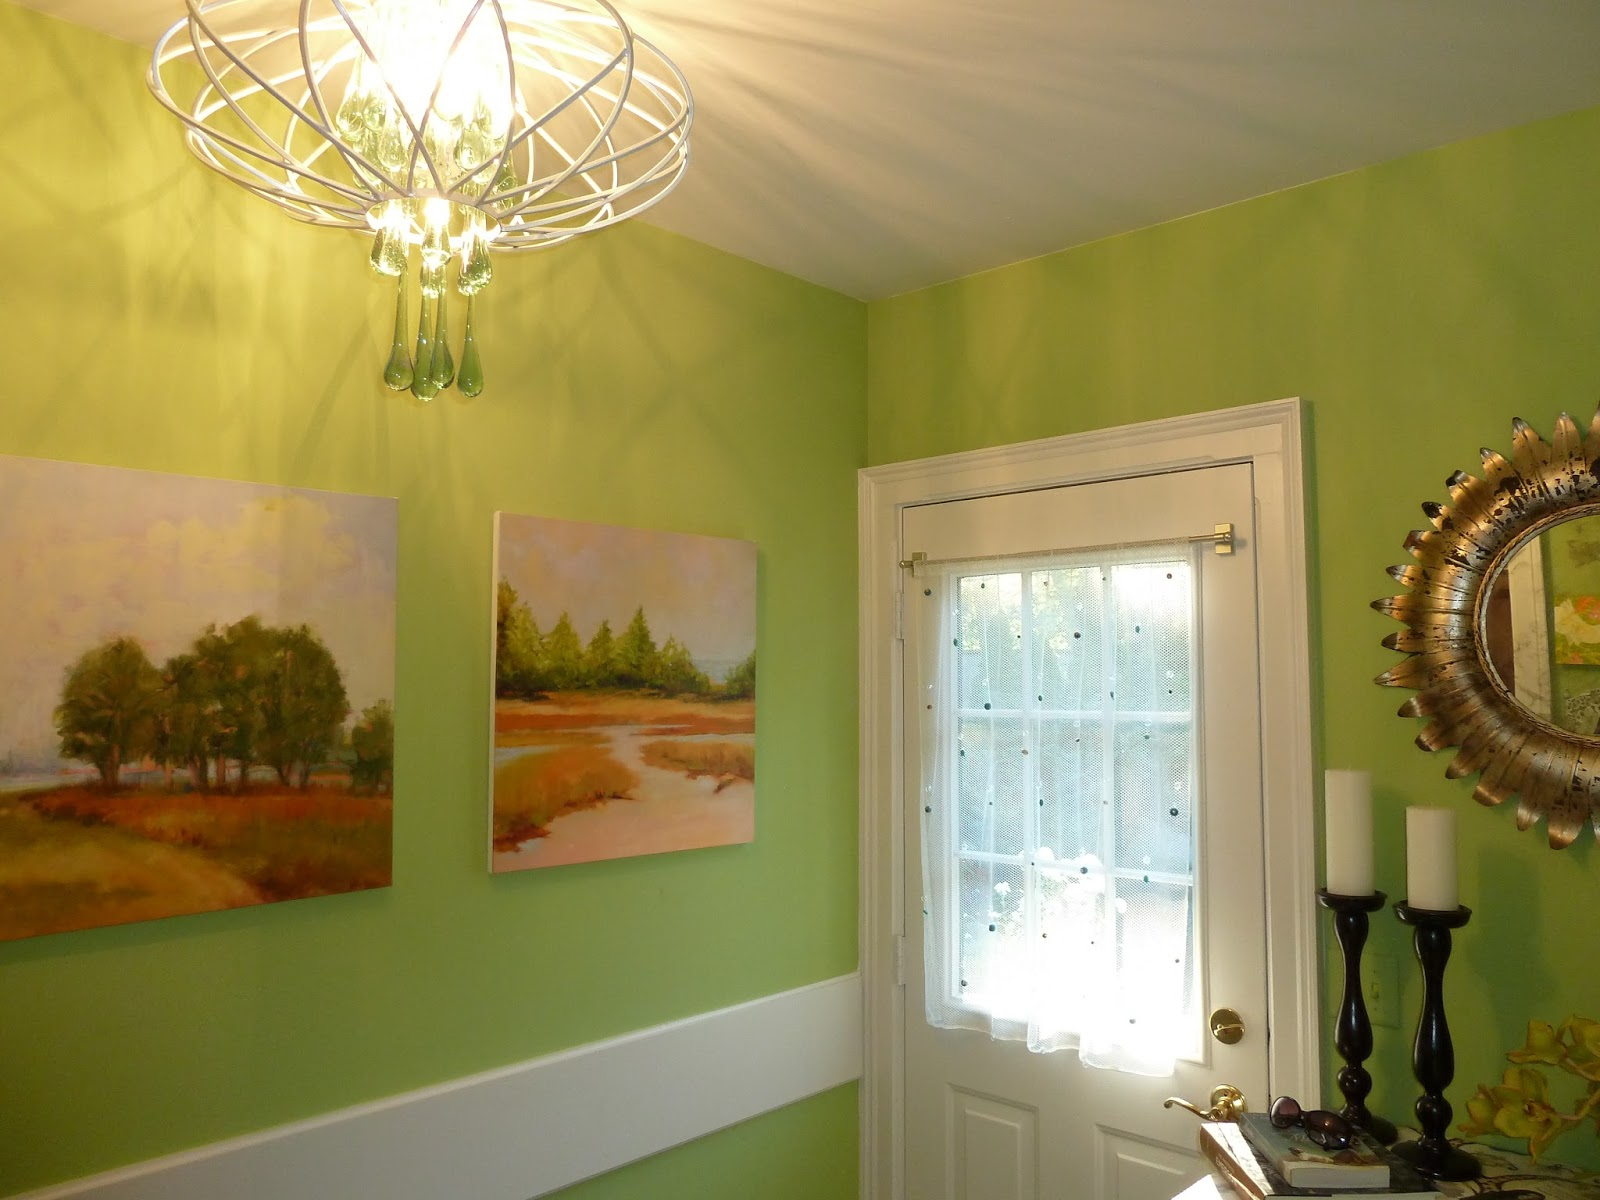 Design Vignettes: Final pics from York Show House ...